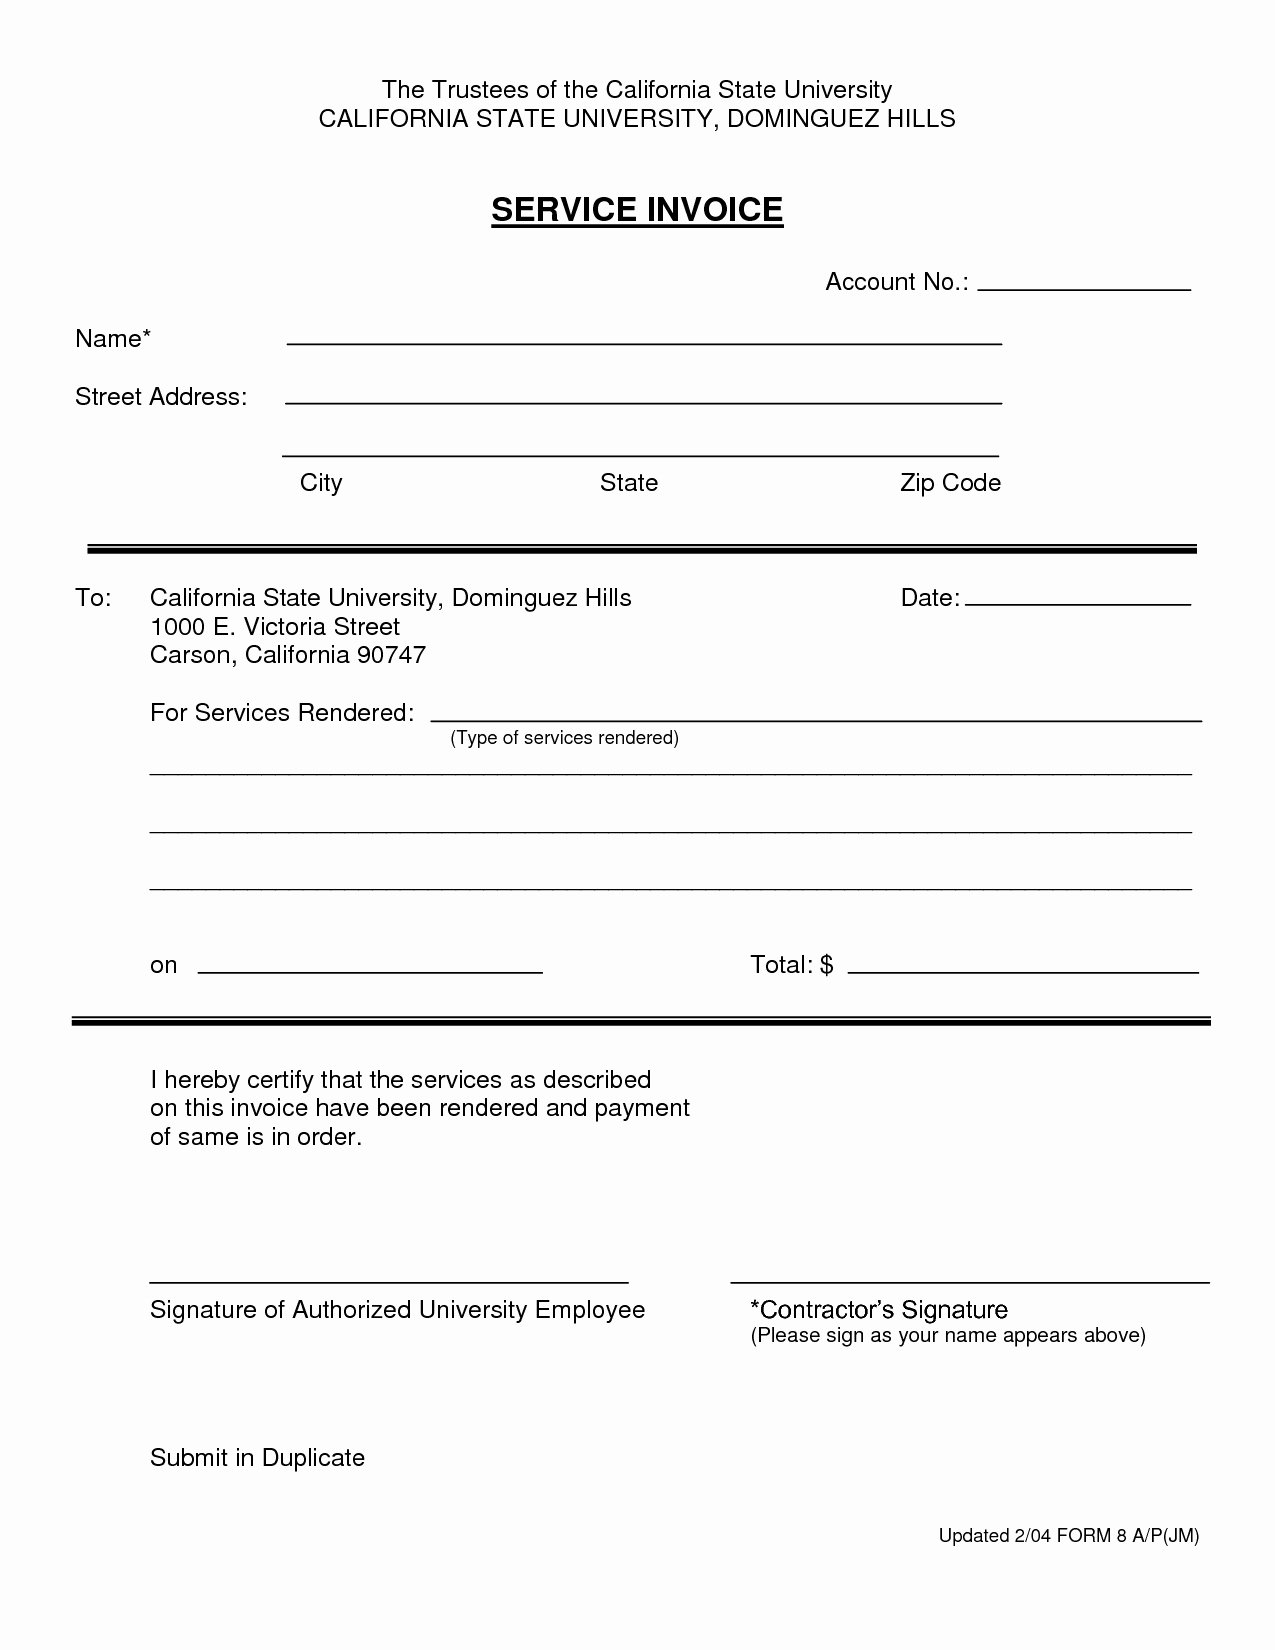 Receipt for Services Rendered New Invoice for Services Rendered Invoice Template Ideas